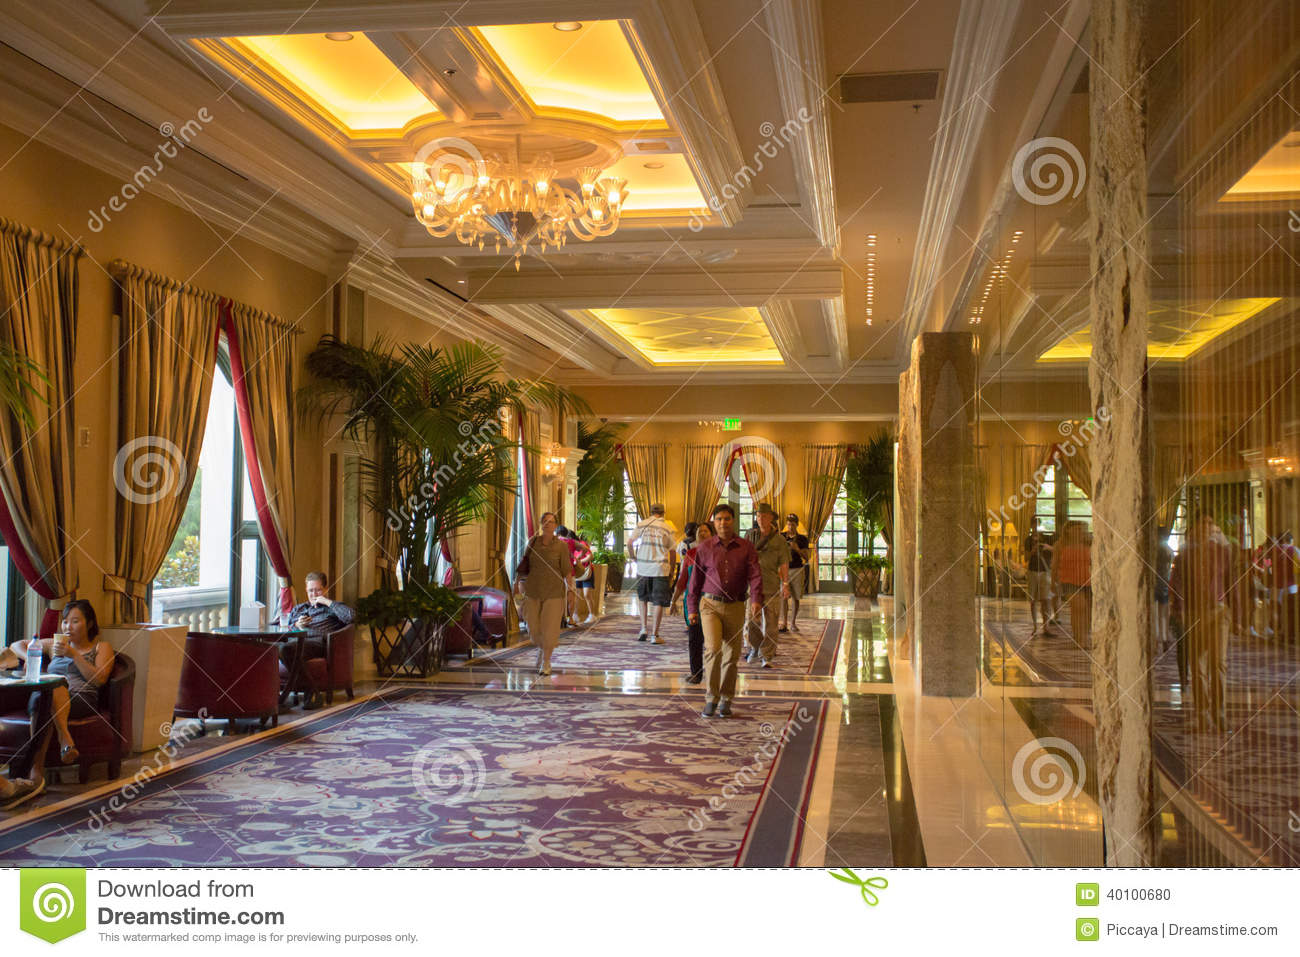 Interior of the bellagio casino hallway in las vegas editorial image image of vegas design Interior decorators las vegas